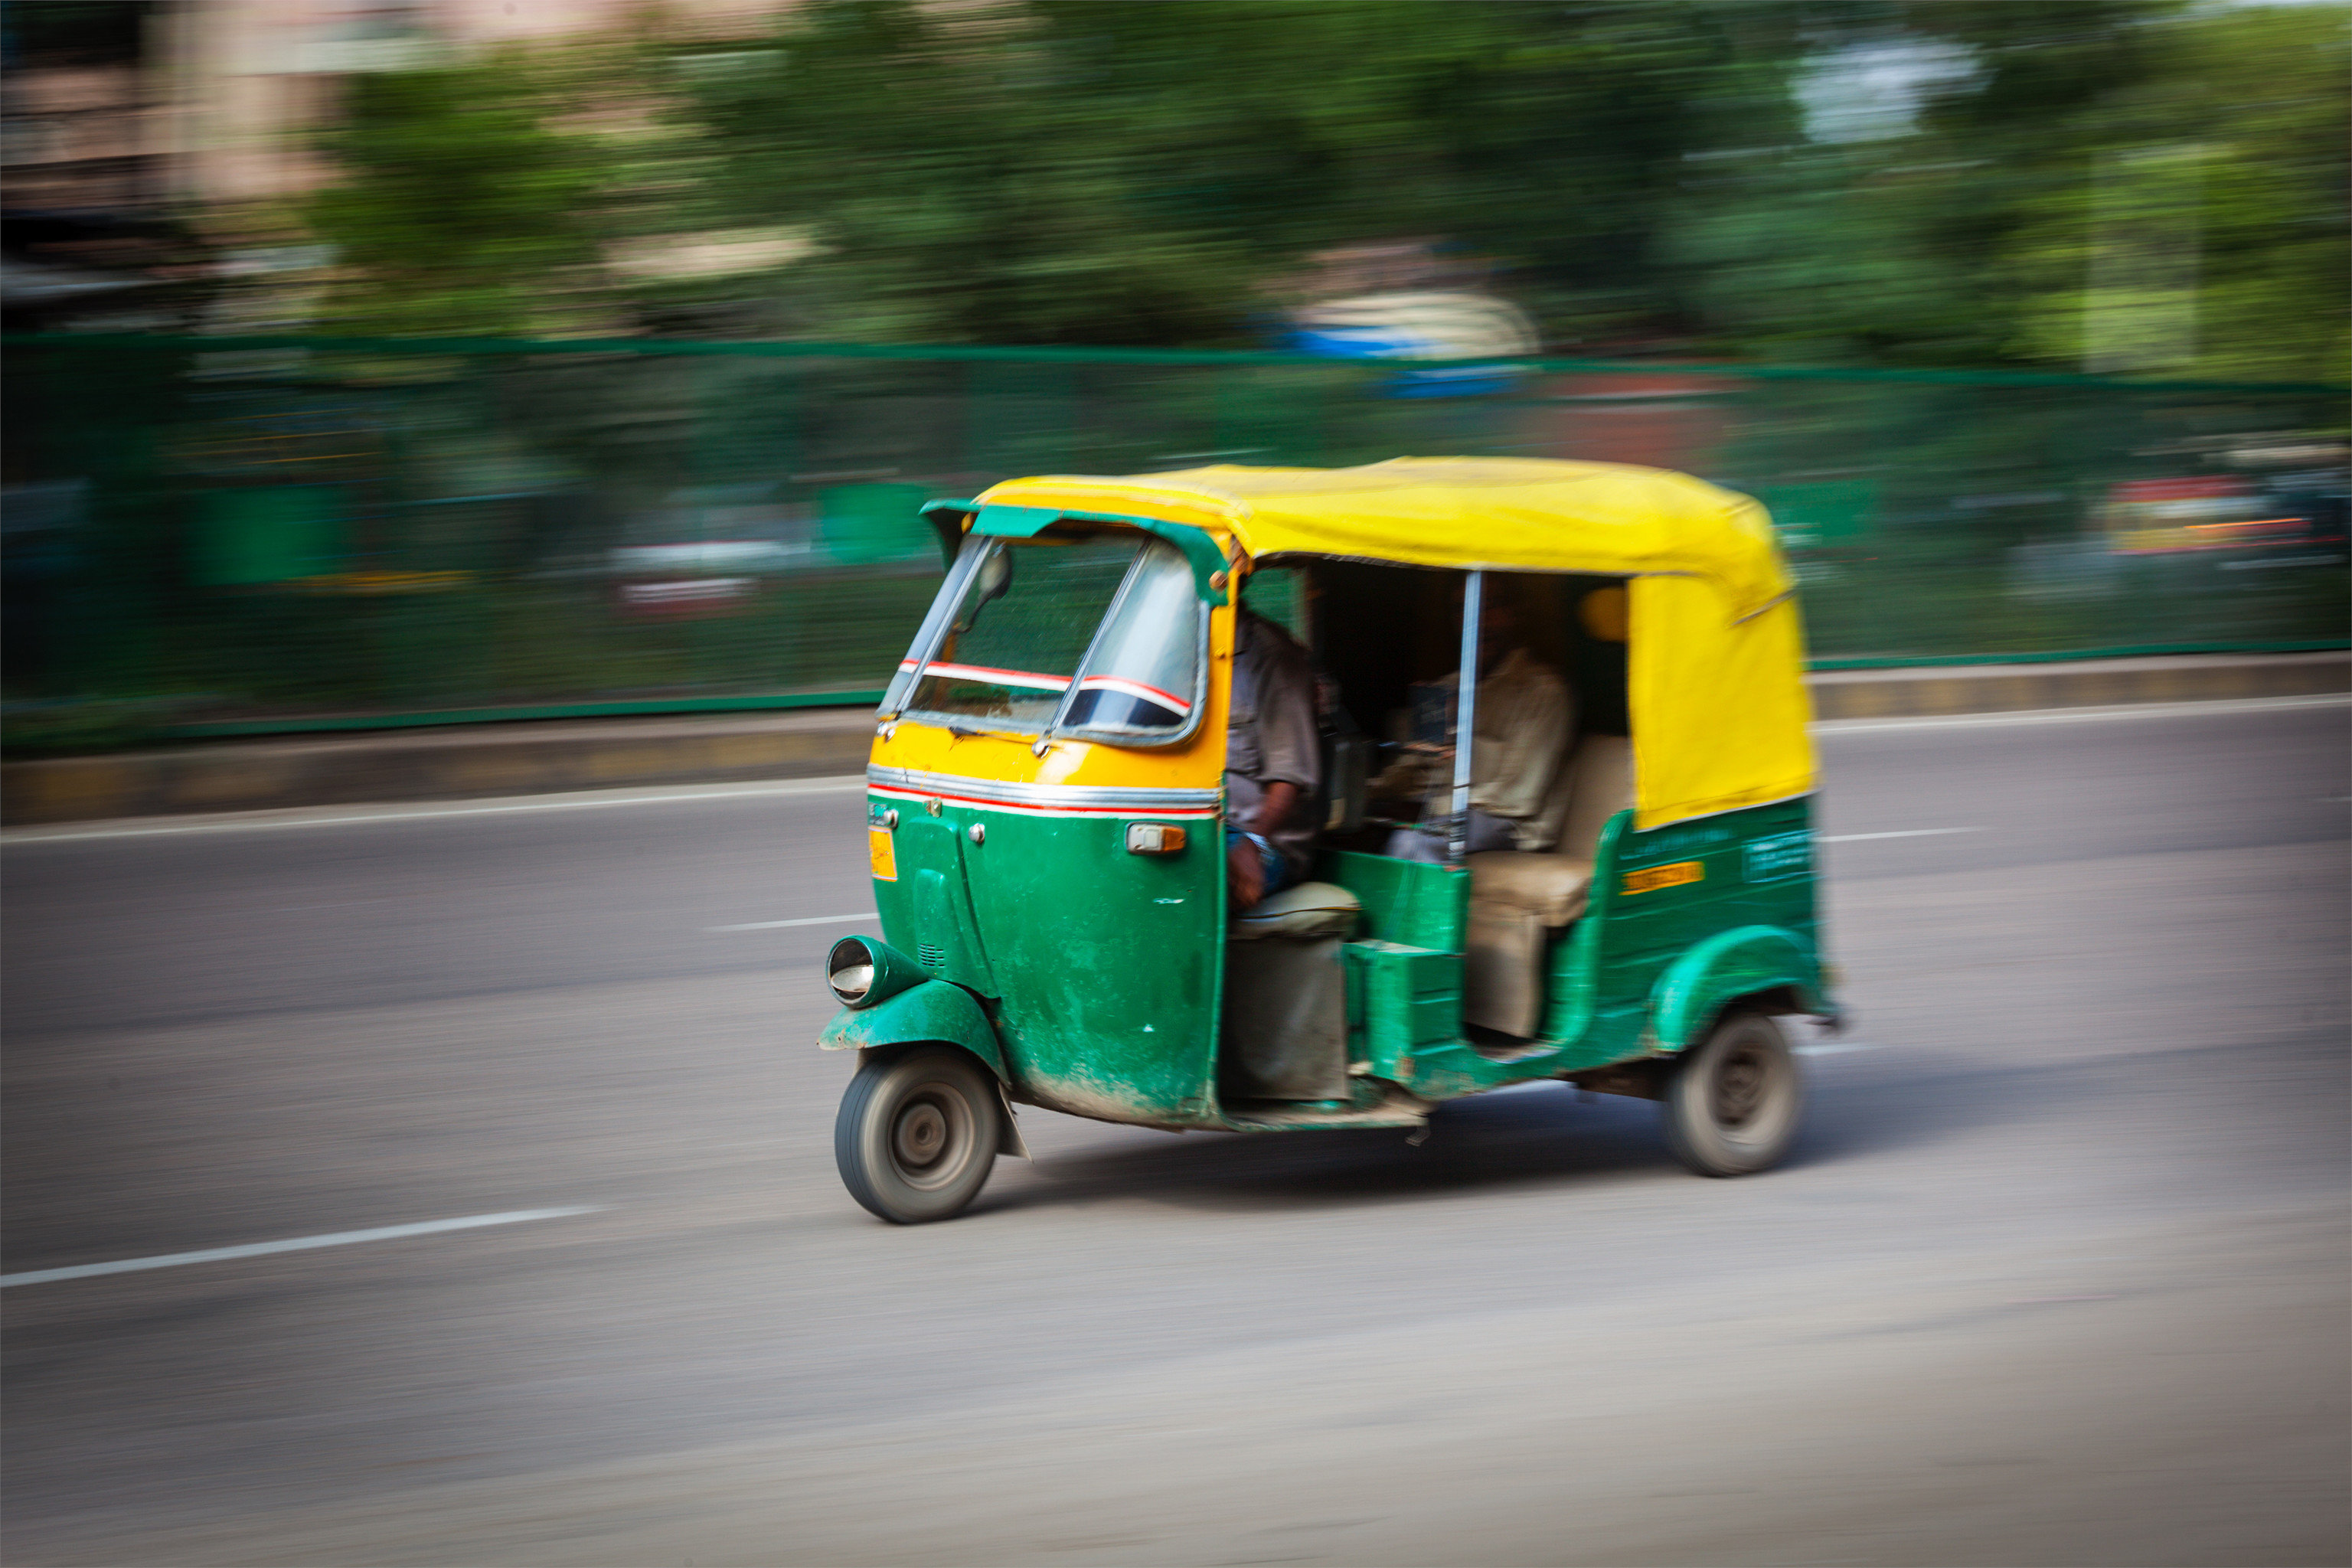 Travel Tips road outdoor green vehicle car yellow street driving transport mode of transport rickshaw cart Classic blue moving past golfcart